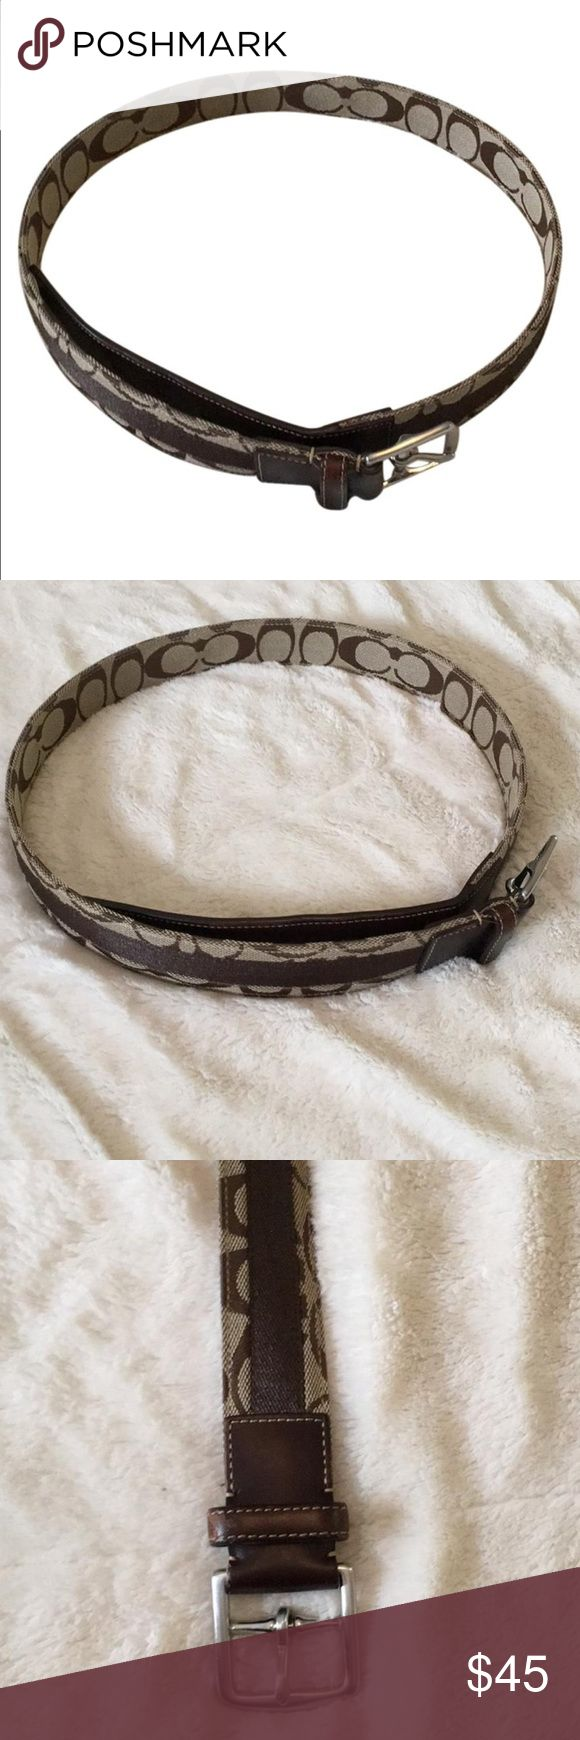 Authentic Brown Coach Belt Authentic brown and light brown coach belt with silver hardware. Slight leather aging visible on belt loop, shown in the last picture. Belt otherwise in good condition. Belt size is 34. The 39 inches are from the belt buckle to the end of the belt. Coach Accessories Belts